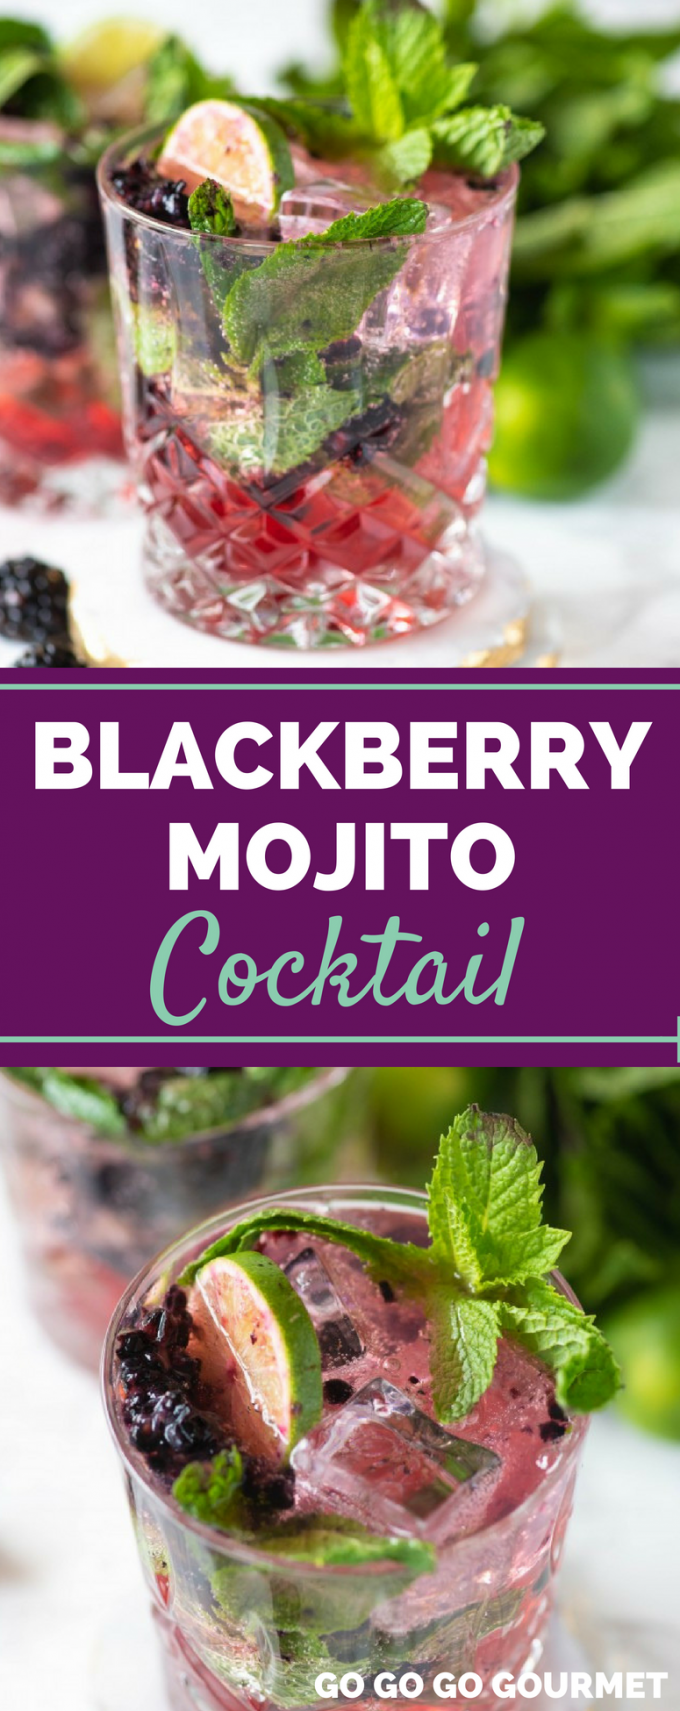 If you like the Starbucks mocktail, you are going to LOVE this Blackberry Mojito cocktail recipe! Whether you're making a pitcher or just one for yourself, this will be one of your favorite refreshing summer drinks! #easysummercocktails #refreshingcocktails #blackberrymojitococktail #gogogogourmet via @gogogogourmet